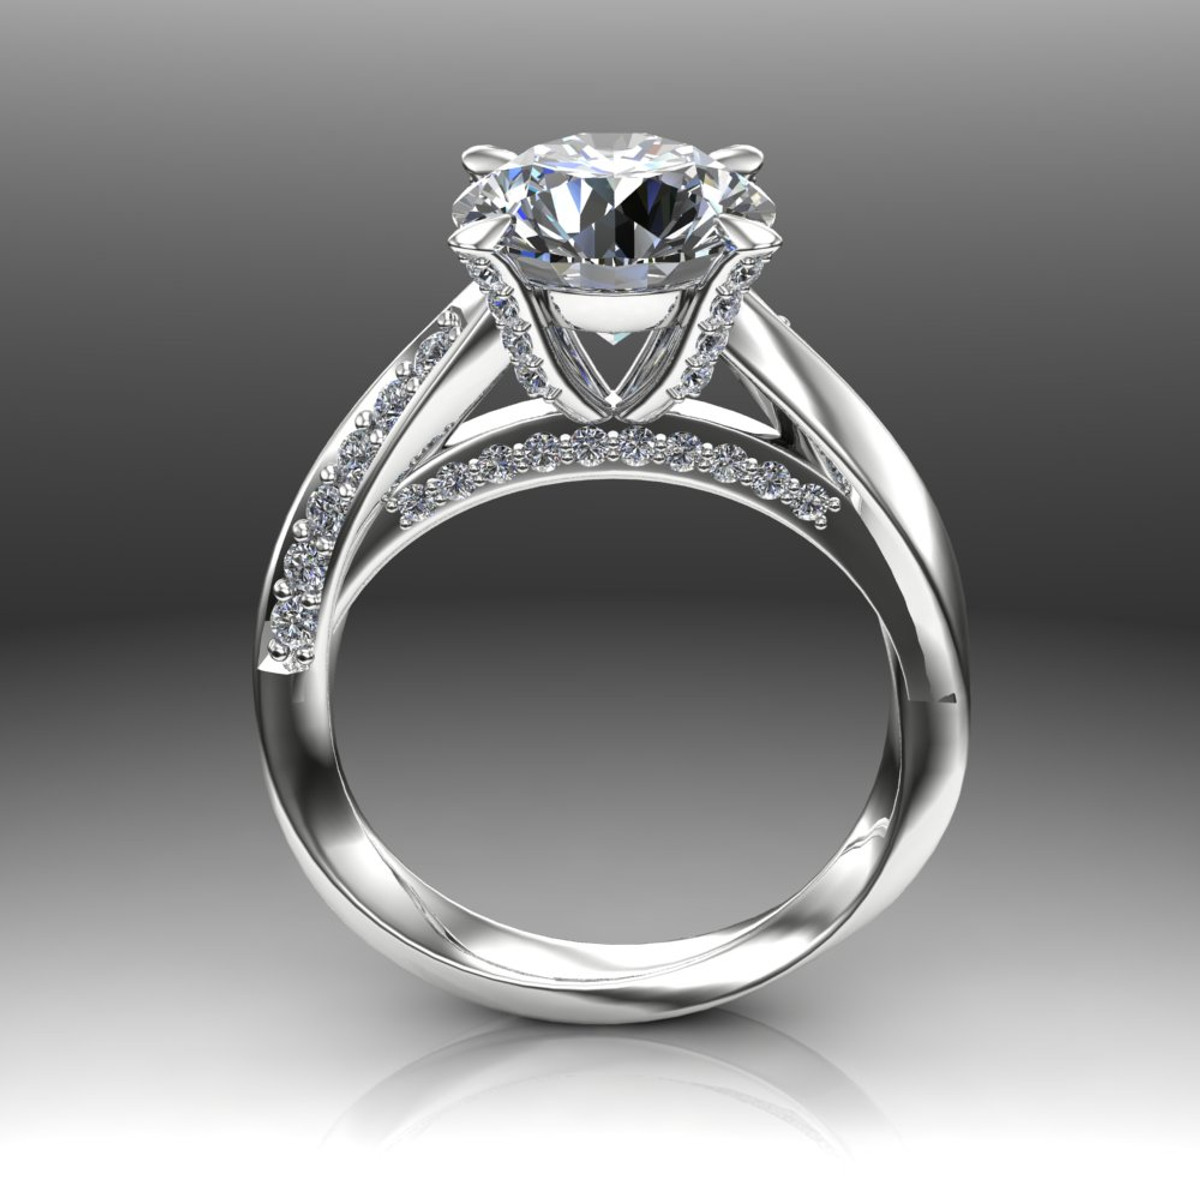 abigail cathedral rings moissanite setting ring center engagement products diamond